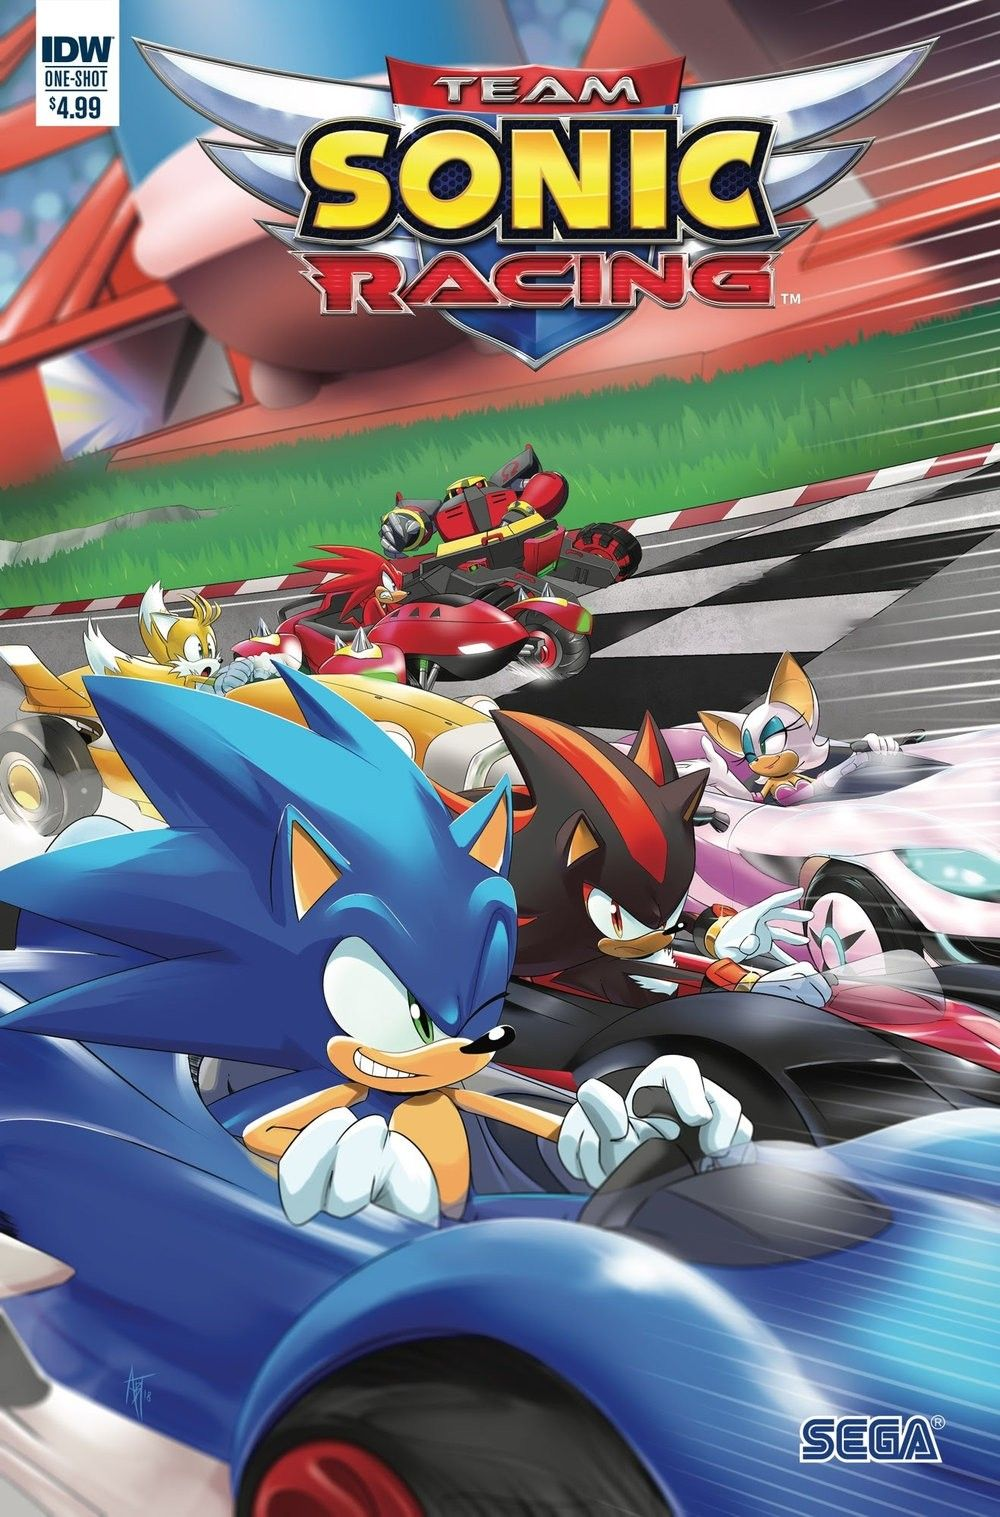 Pin By Marcocraft95 On Sonic Comic Styles And Poses Sonic Sonic Fan Art Sonic The Hedgehog